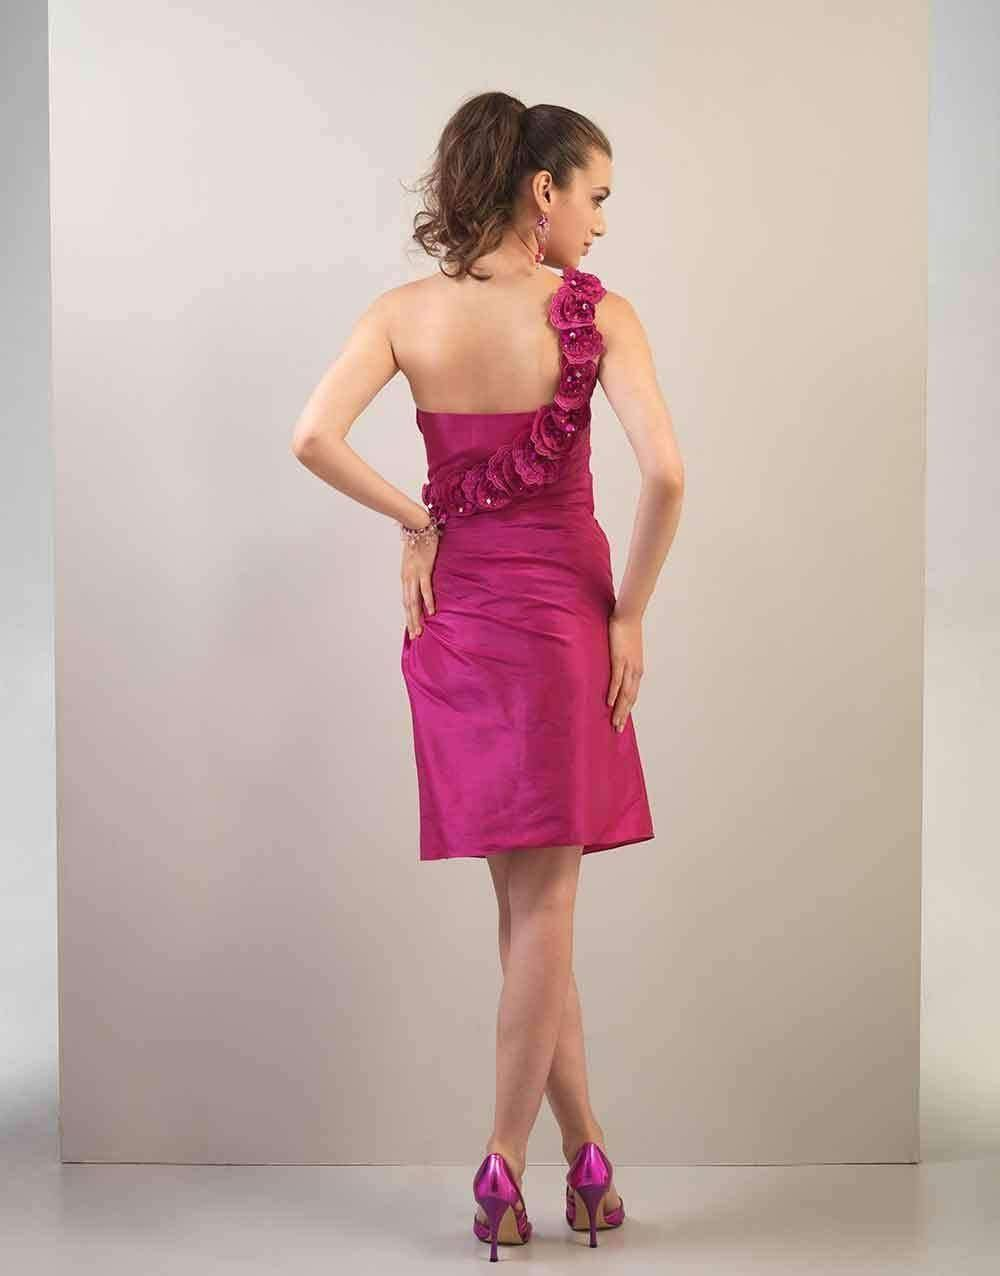 UK08 PINK VENEER - NEVA - SALE - Adore Bridal and Occasion Wear